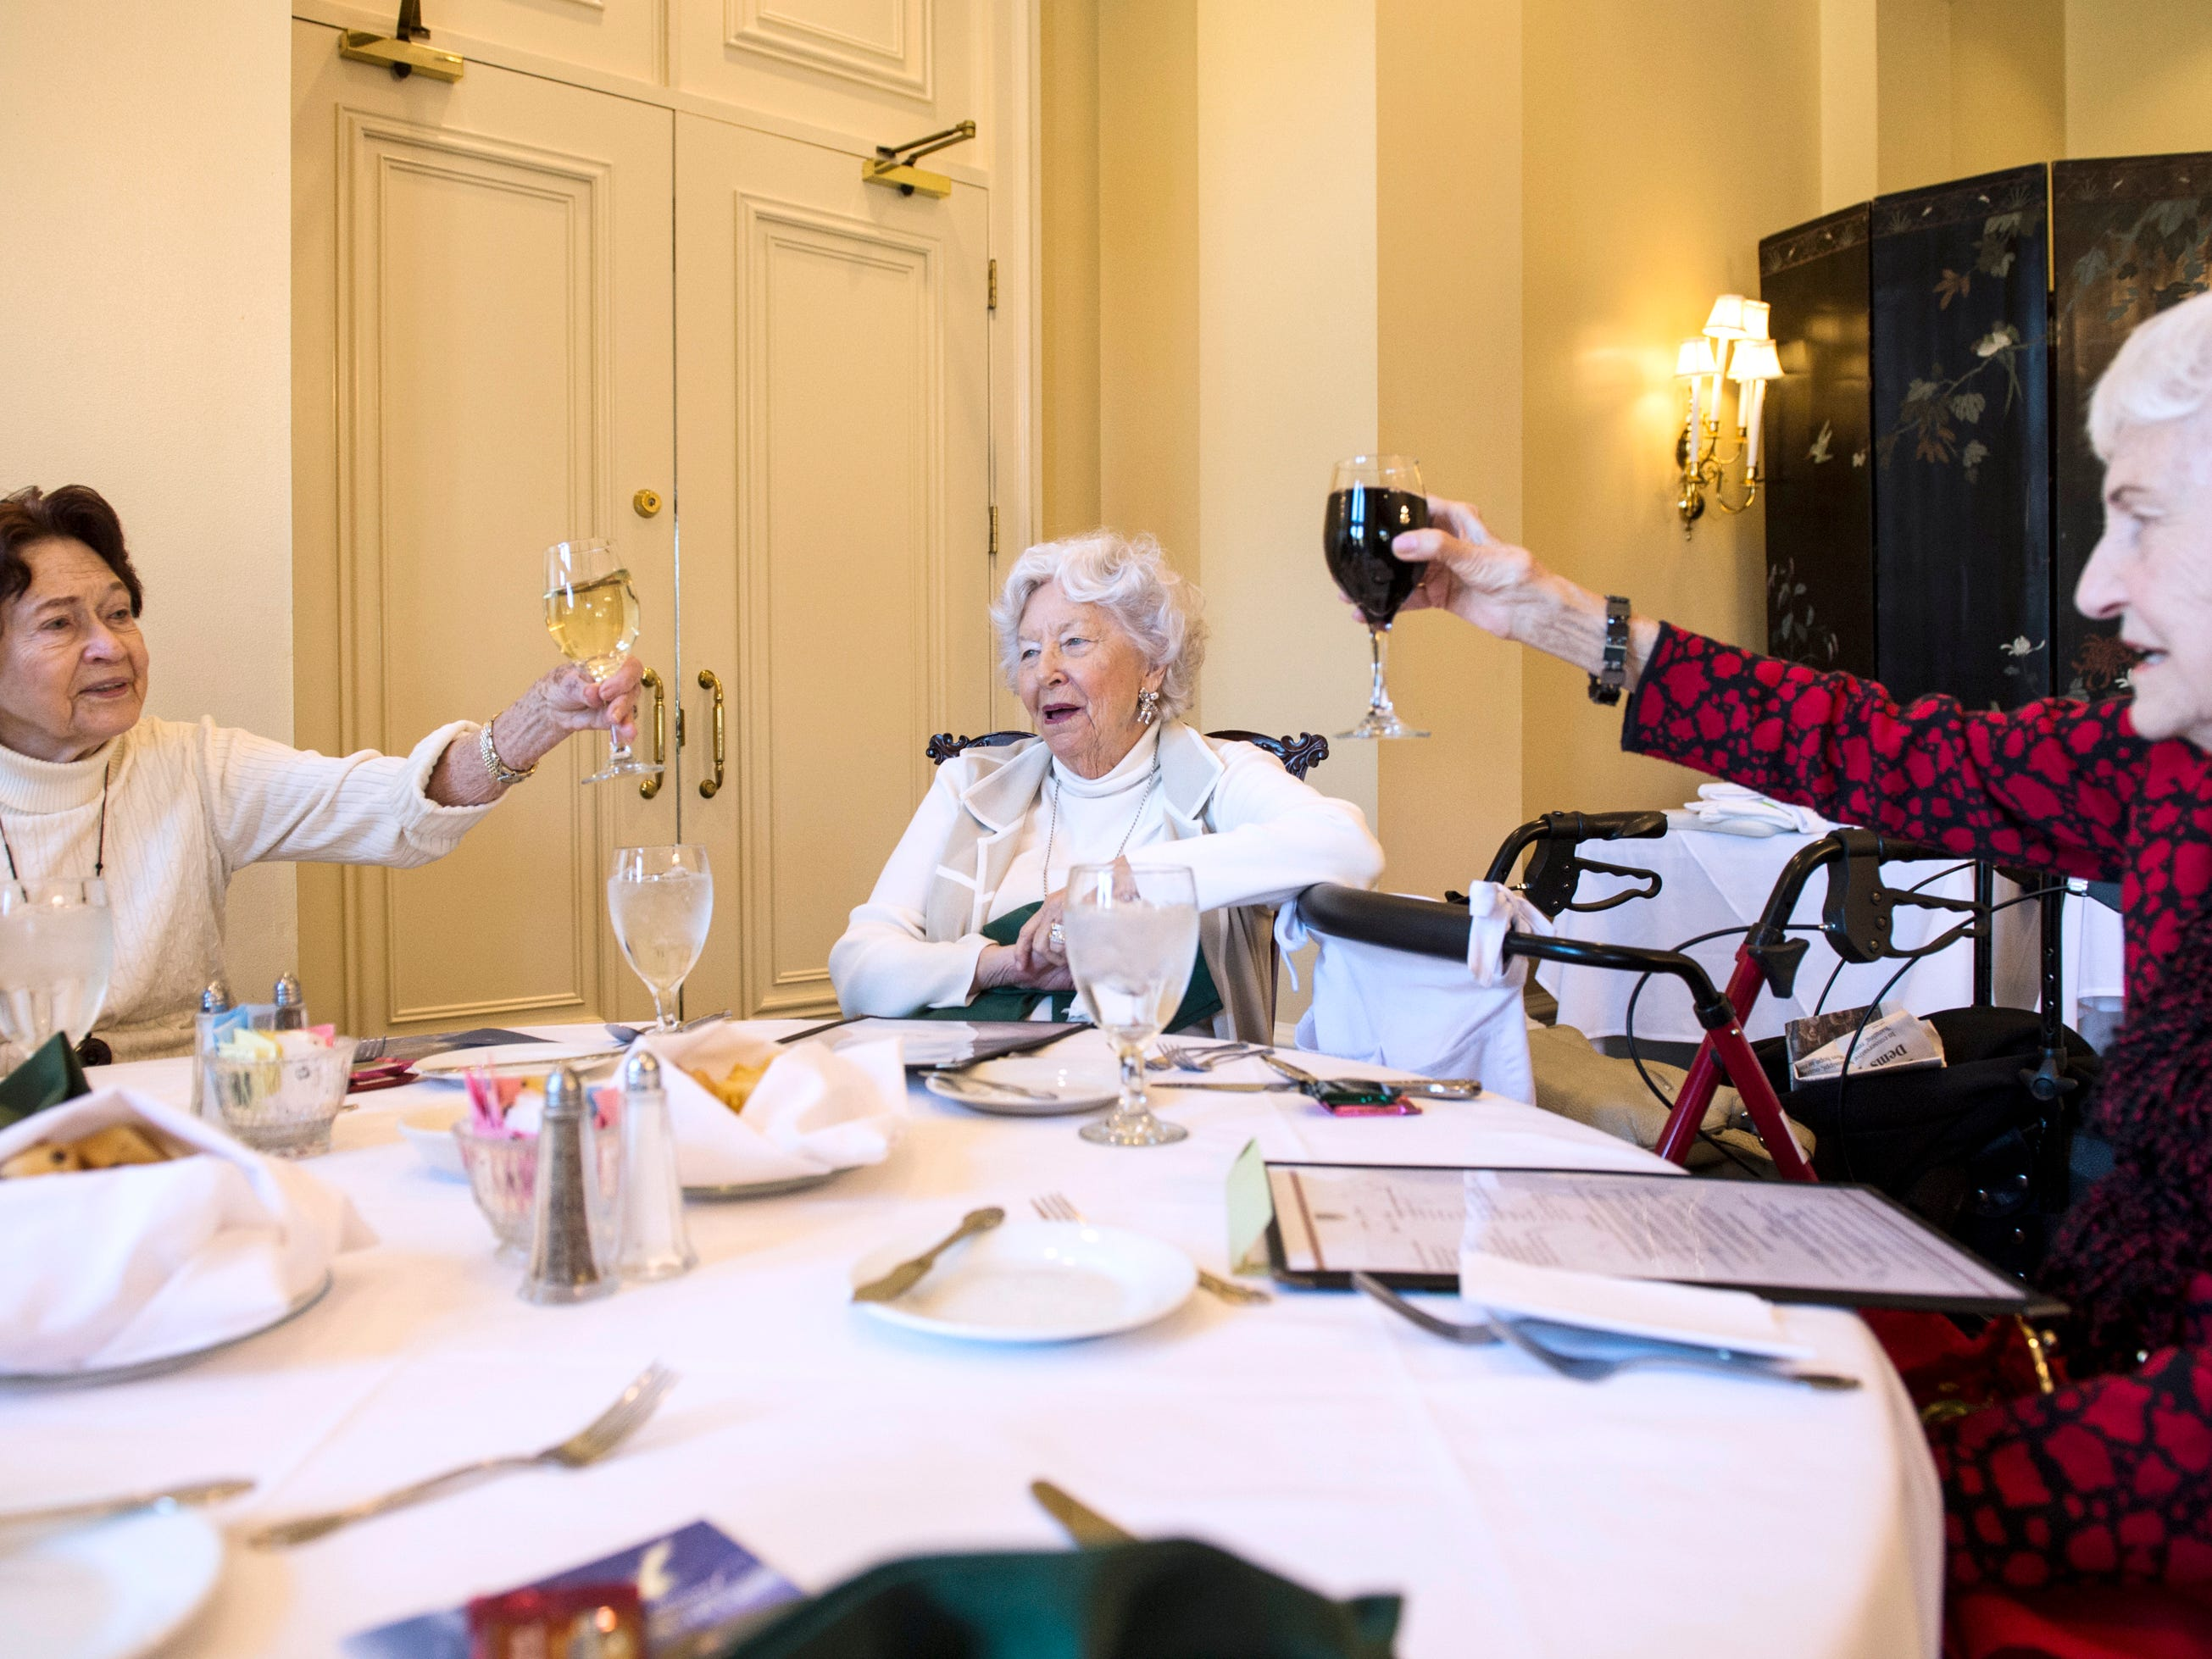 Peggy Joseph, left, and Dot Hawthorne, right, cheers during lunch at Montgomery Country Club in Montgomery, Ala., on Wednesday, Dec. 5, 2018.